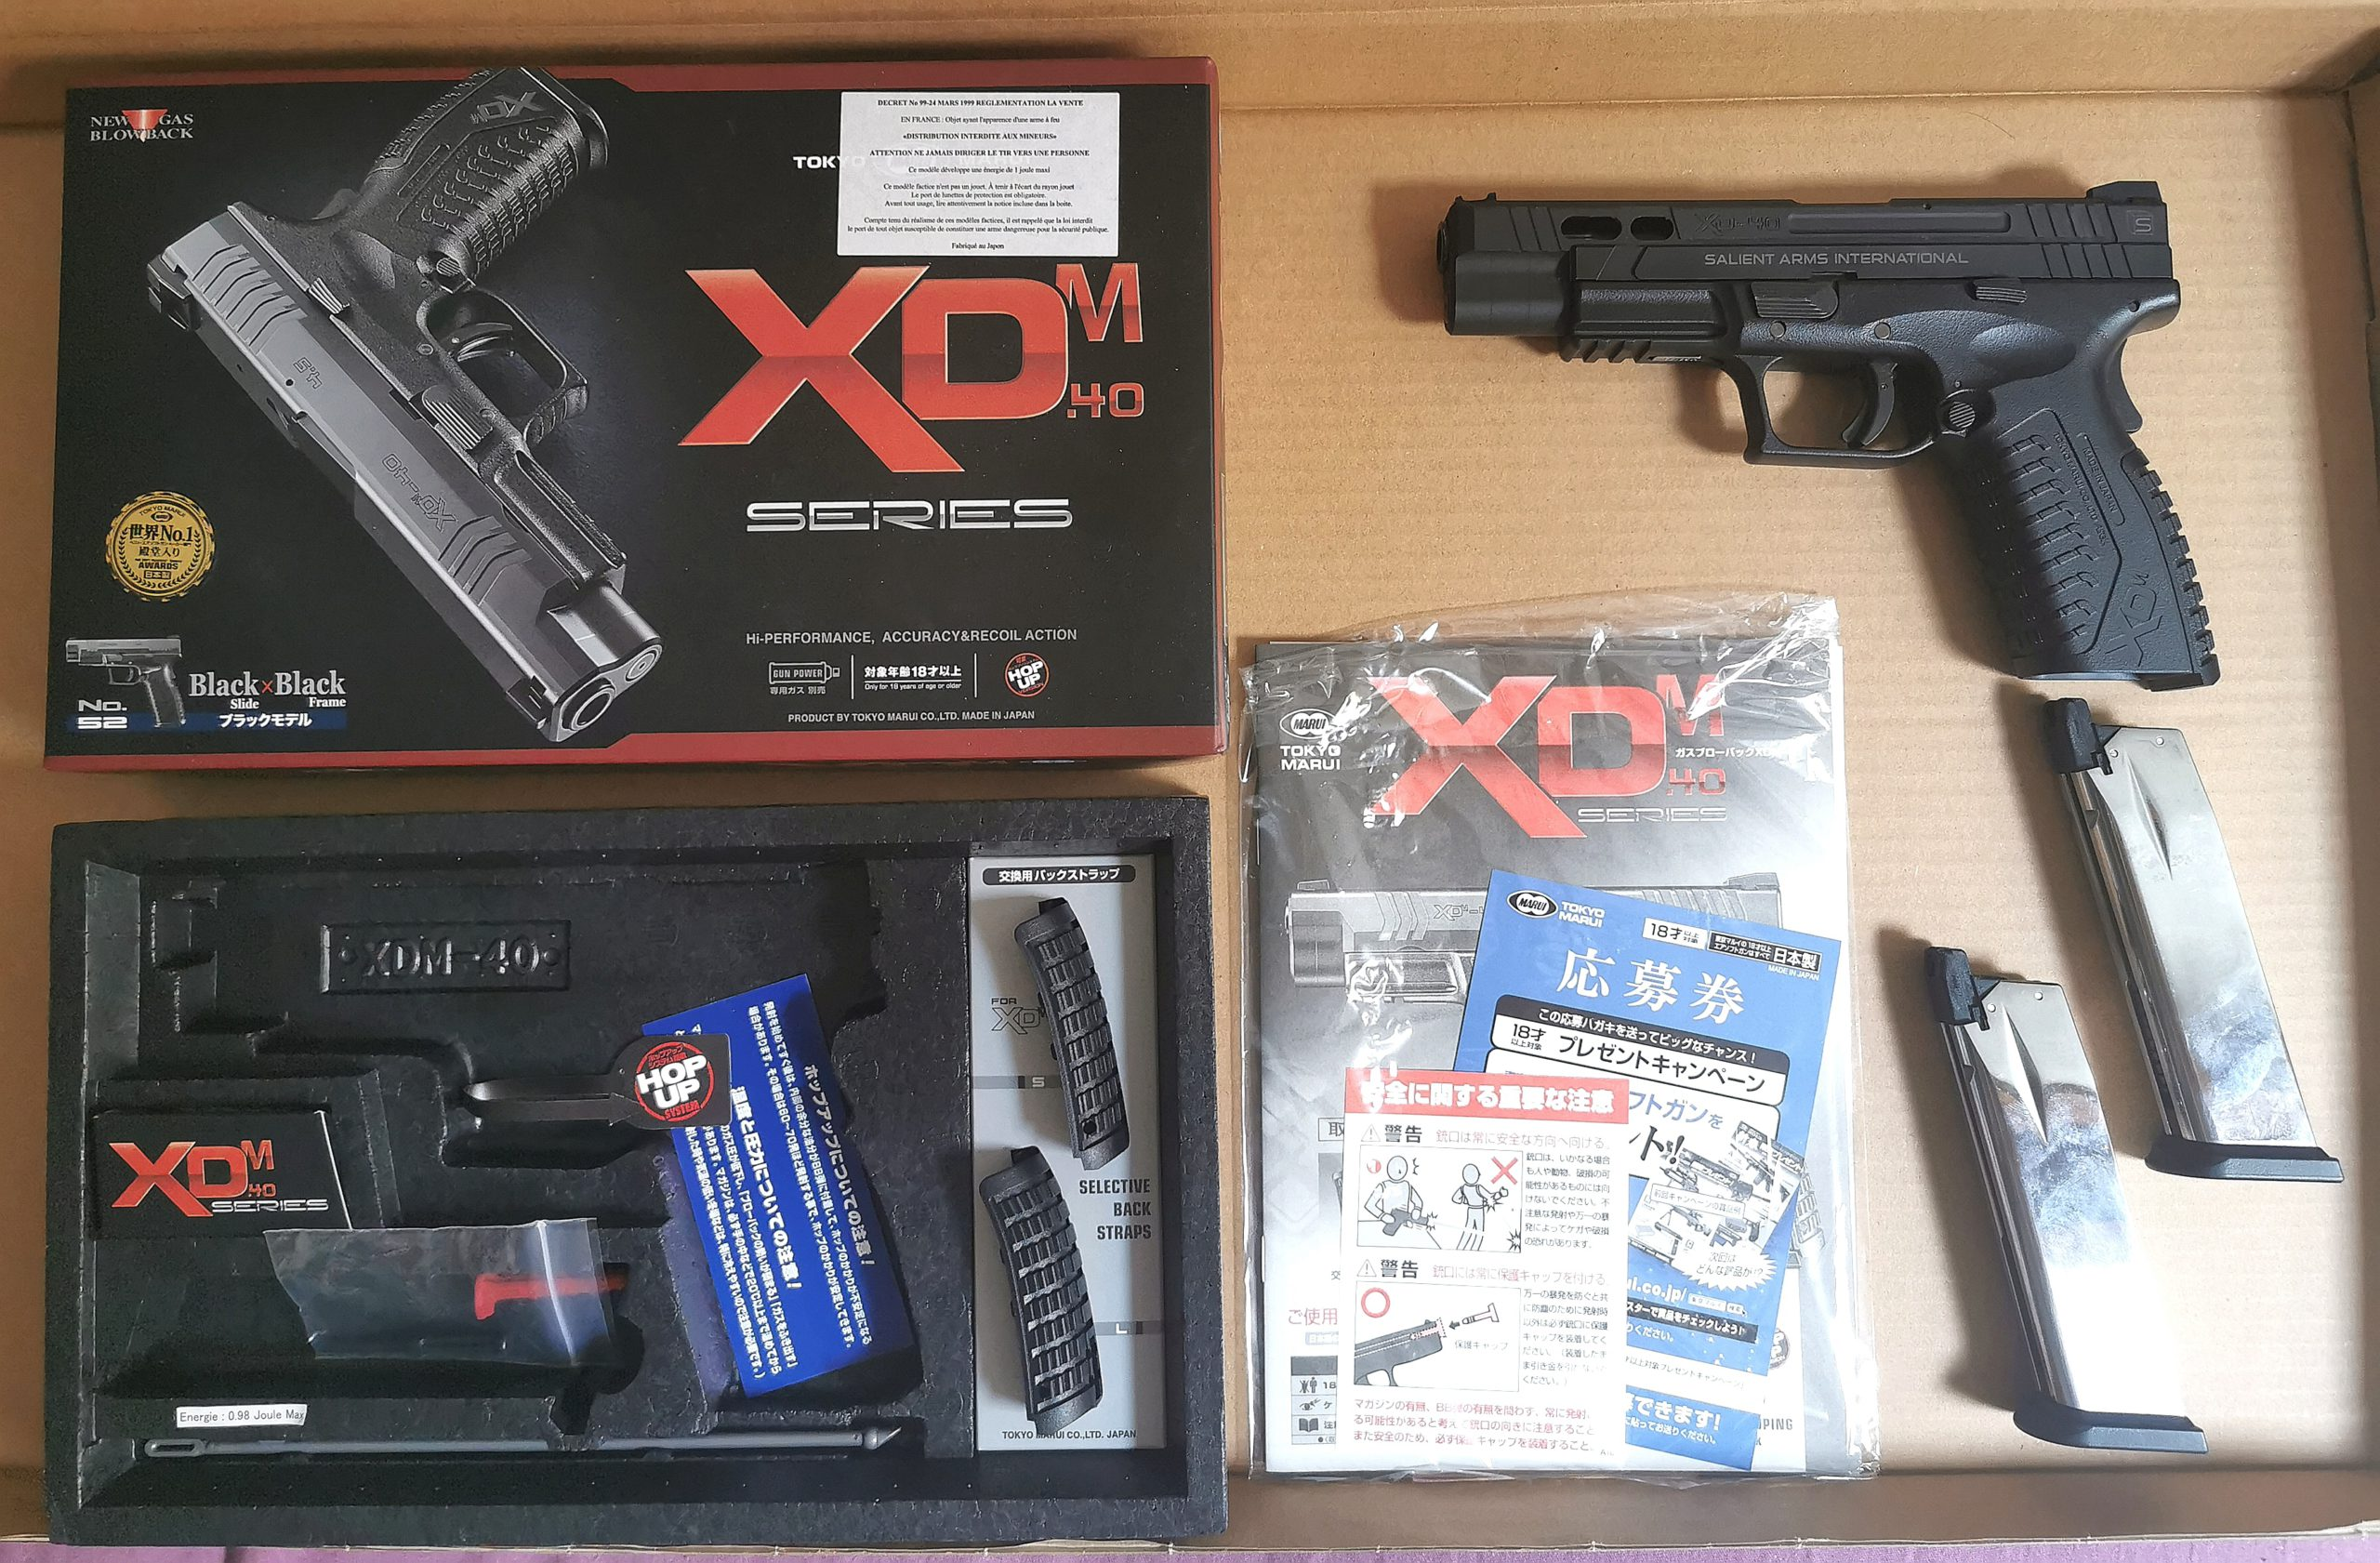 Xdm40 tm/airsoft surgeon